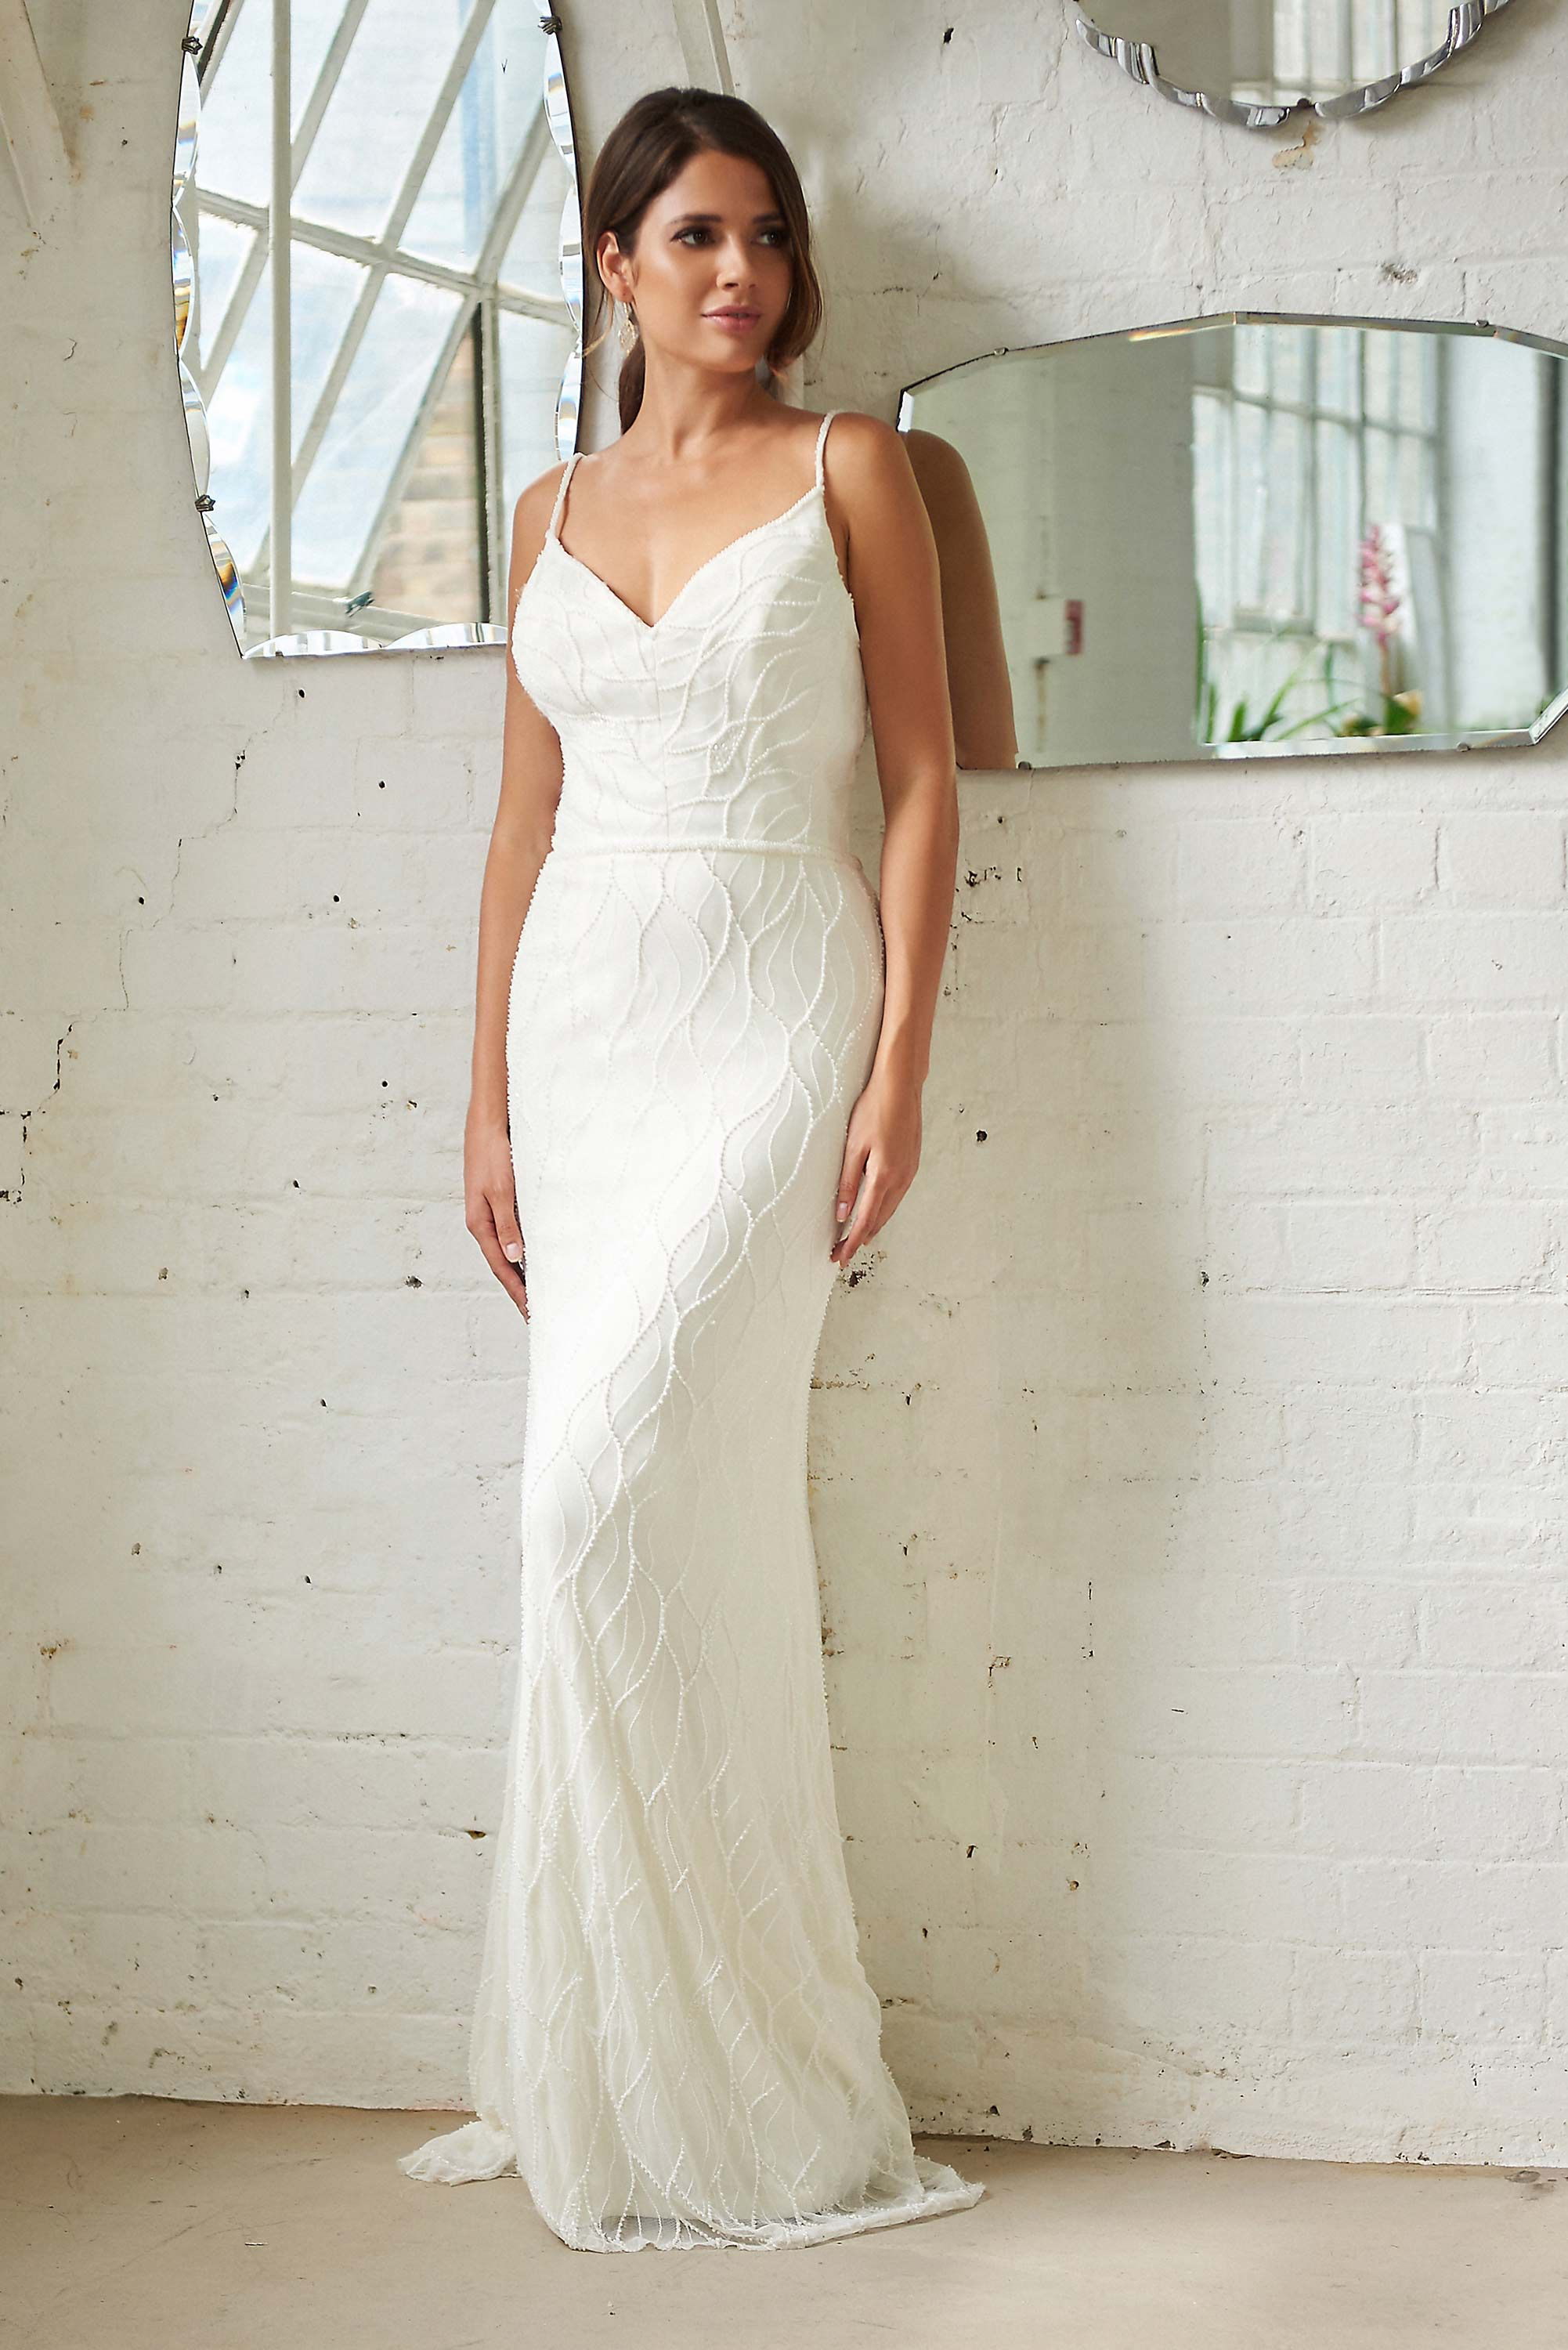 Zara Bohemian Wedding Dresses Simple Elegant Dress Uk Designer